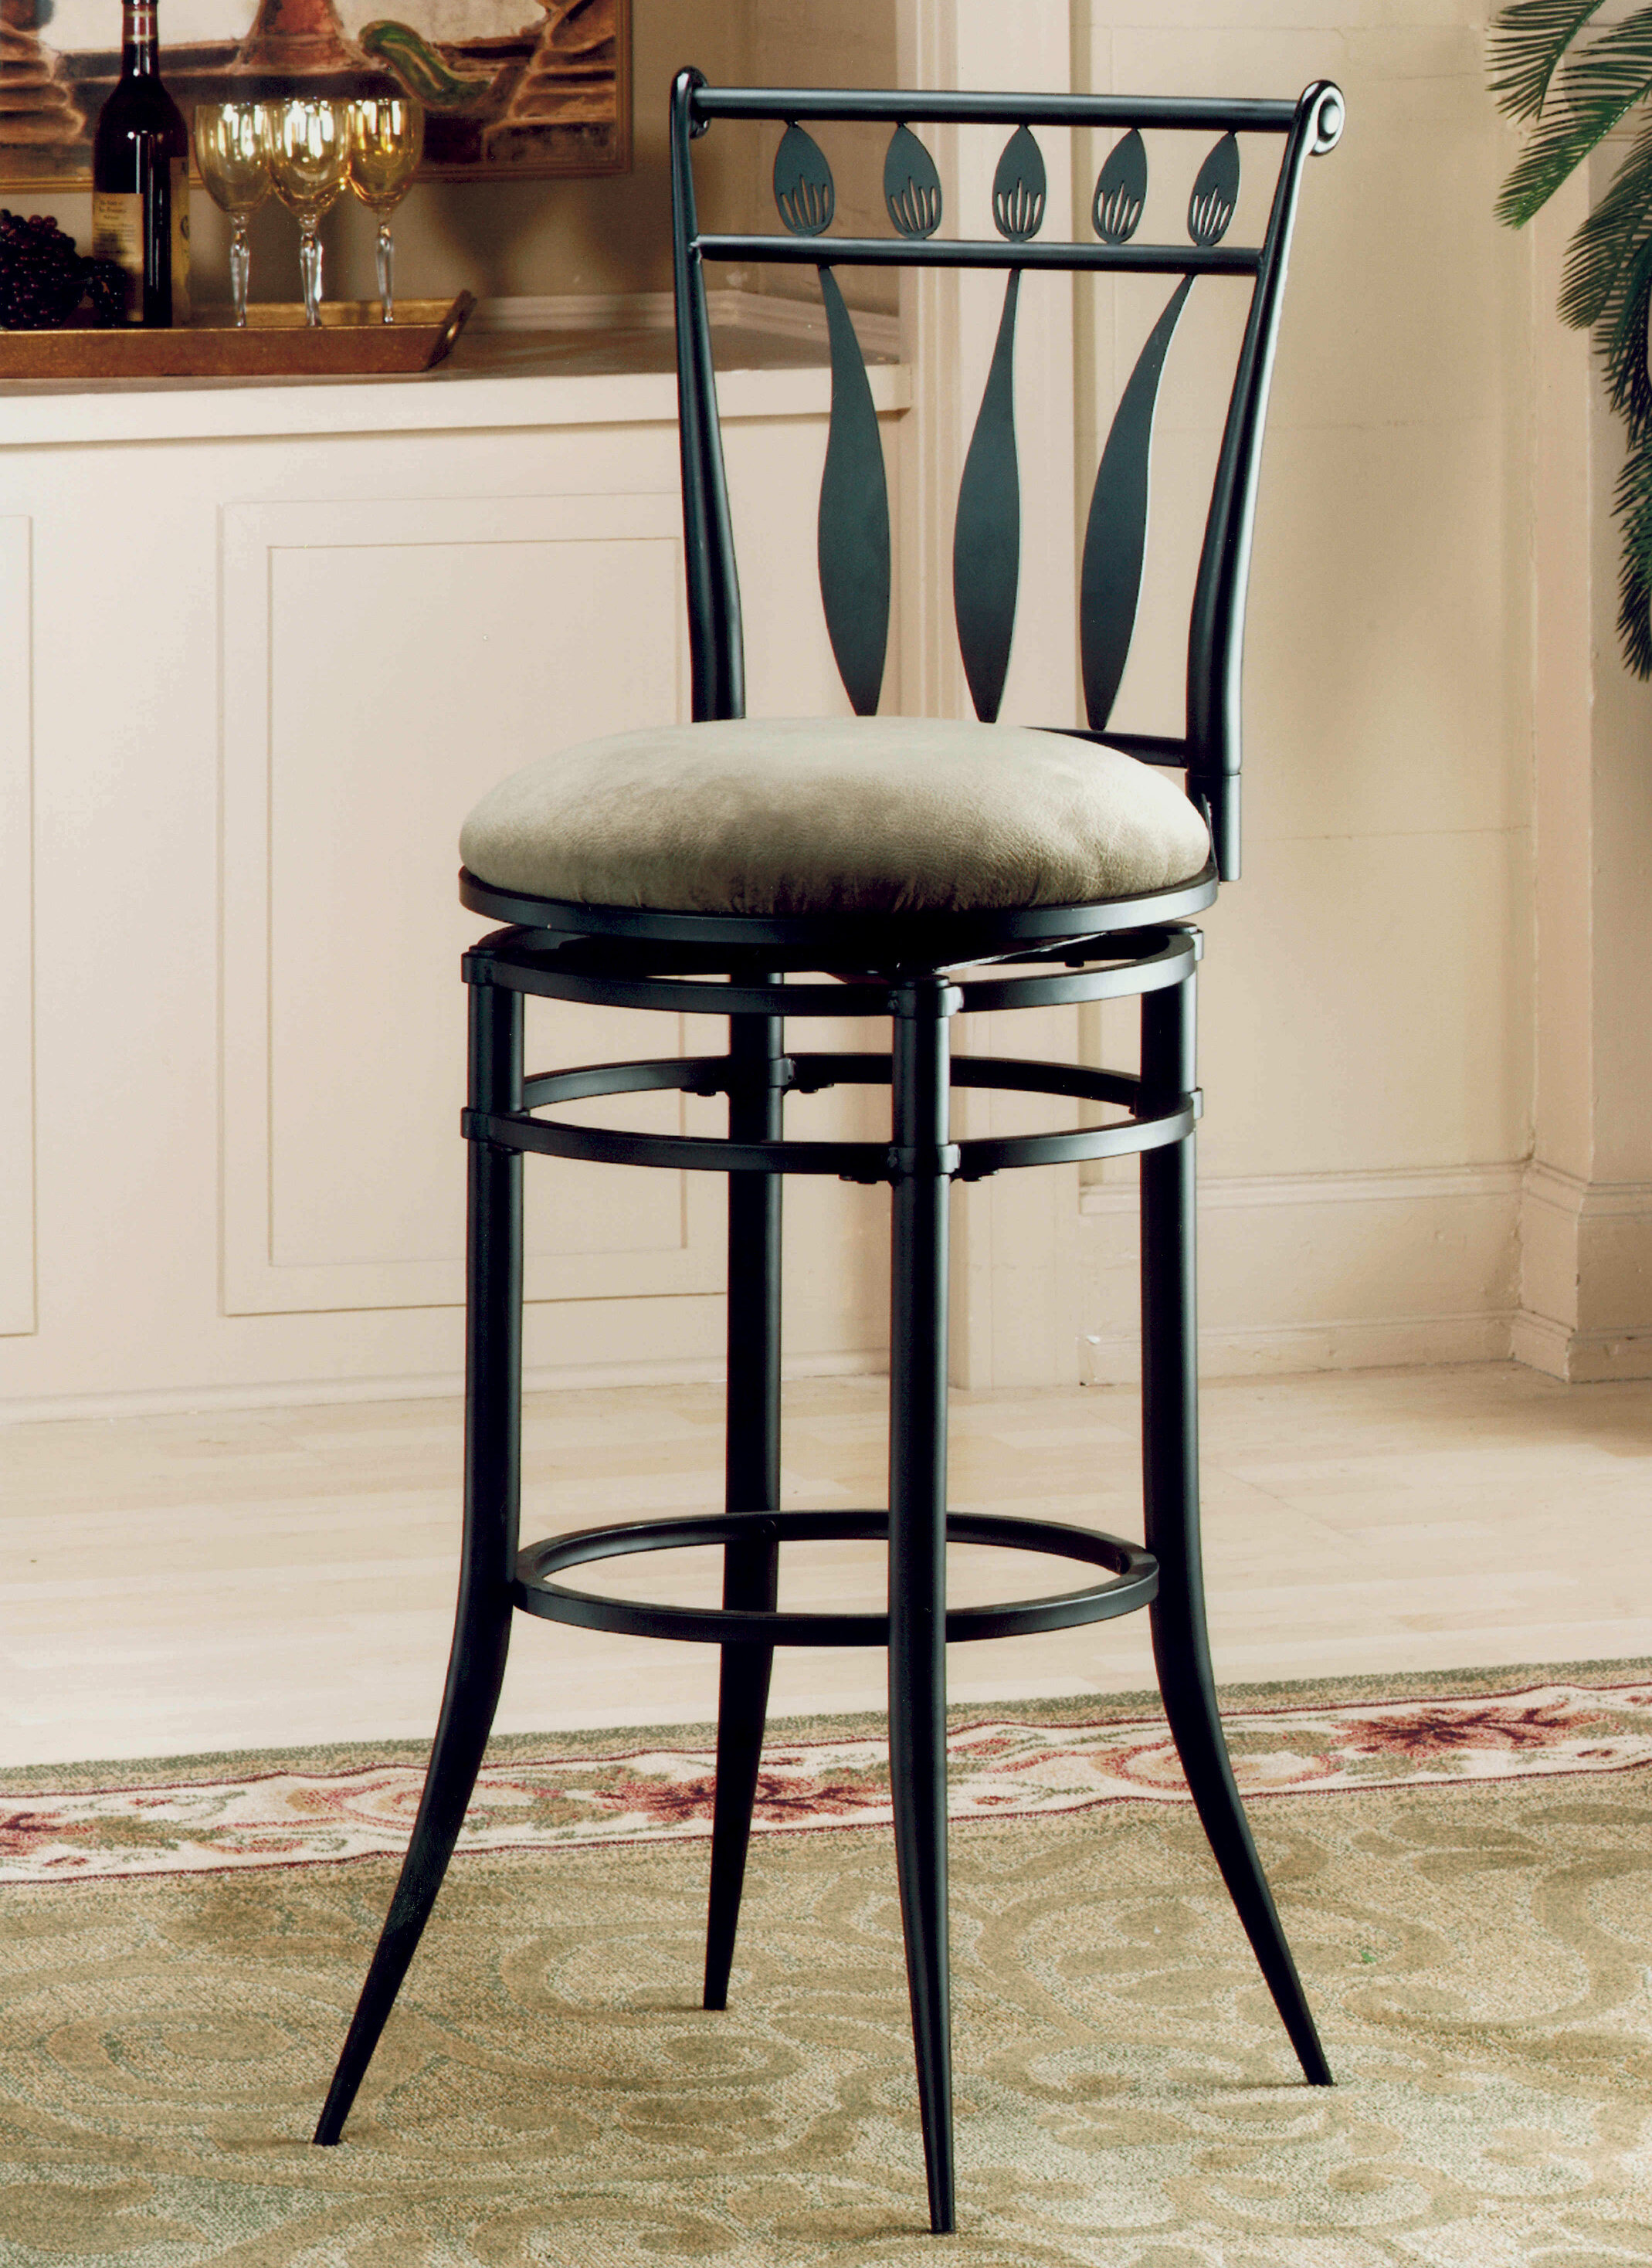 Outstanding Darby Home Co Avila 26 Swivel Bar Stool With Cushion Ibusinesslaw Wood Chair Design Ideas Ibusinesslaworg